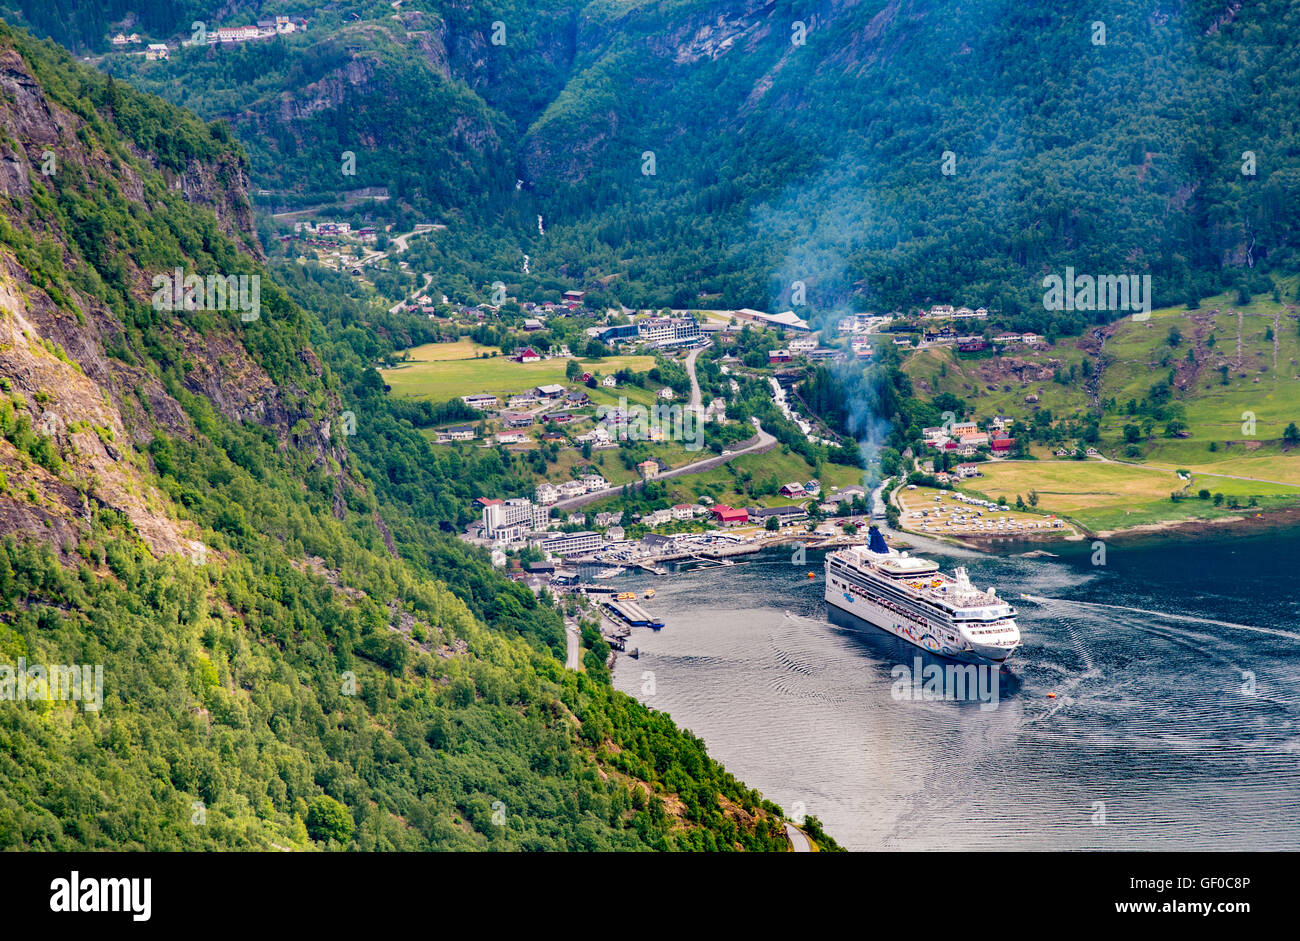 View of the Village of Geiranger Fiord Harbour Port, Norway, Scandanavia, European - Stock Image